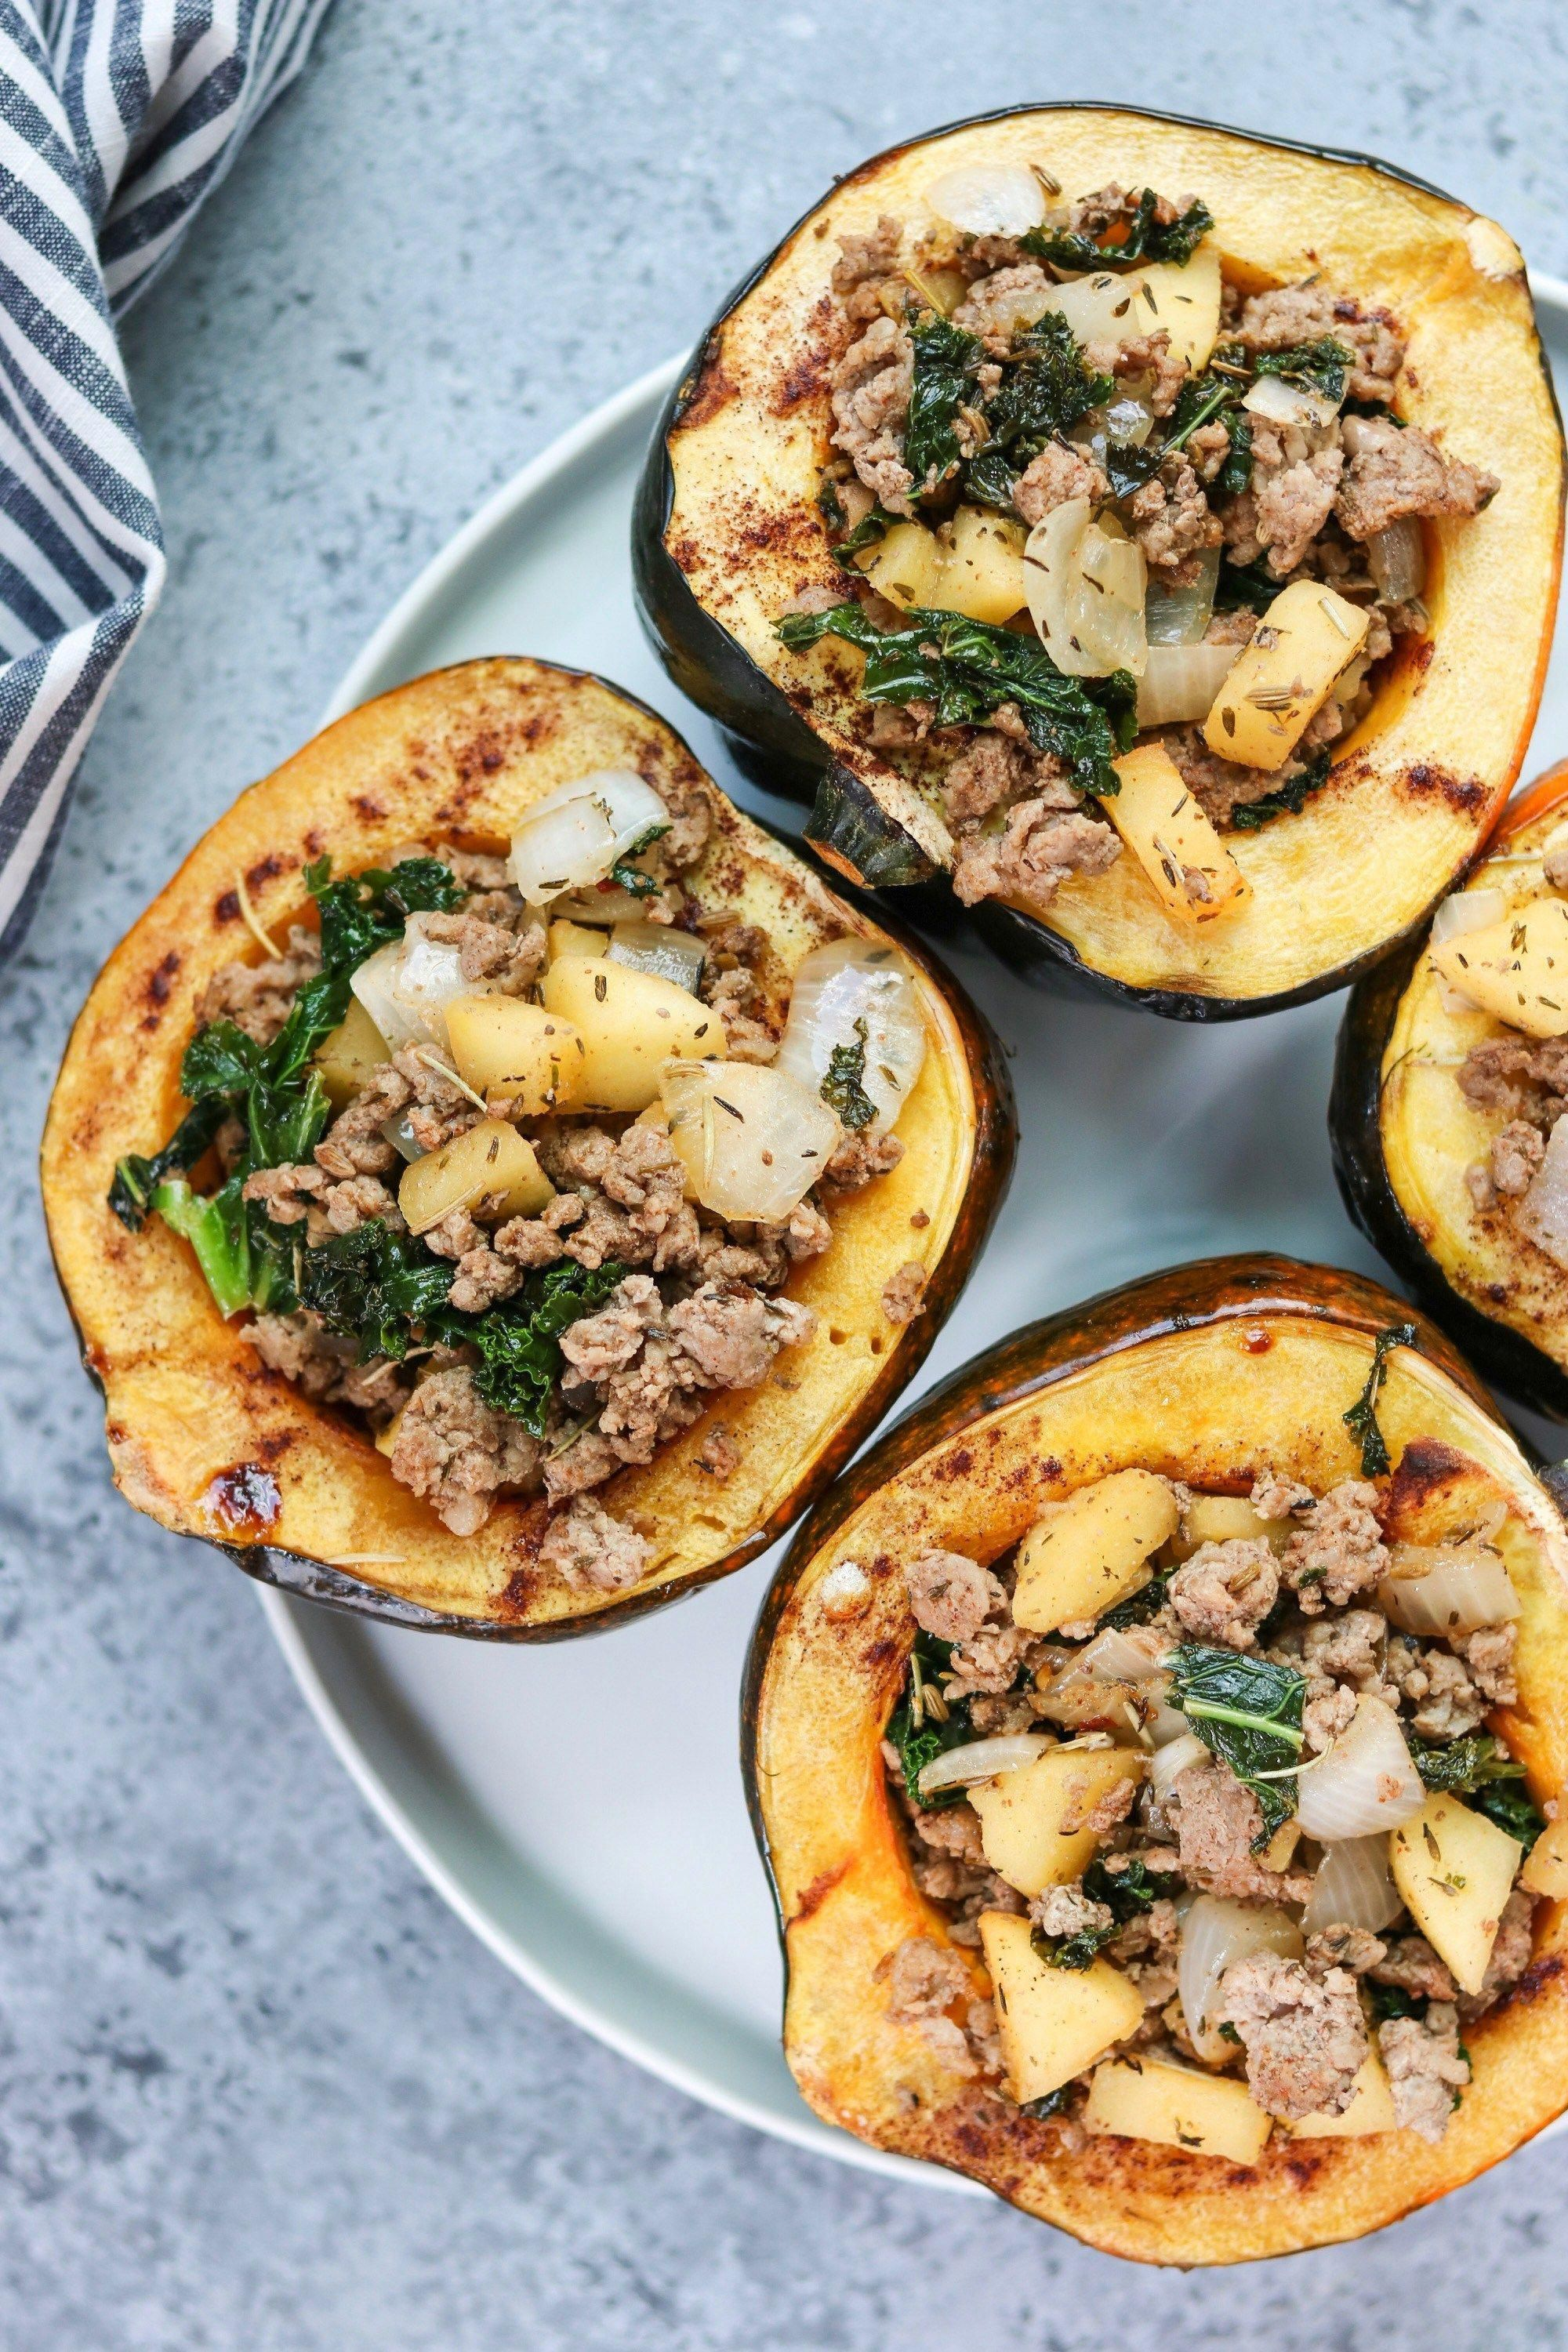 This Whole30 Harvest Stuffed Acorn Squash Is A Delicious Sweet And